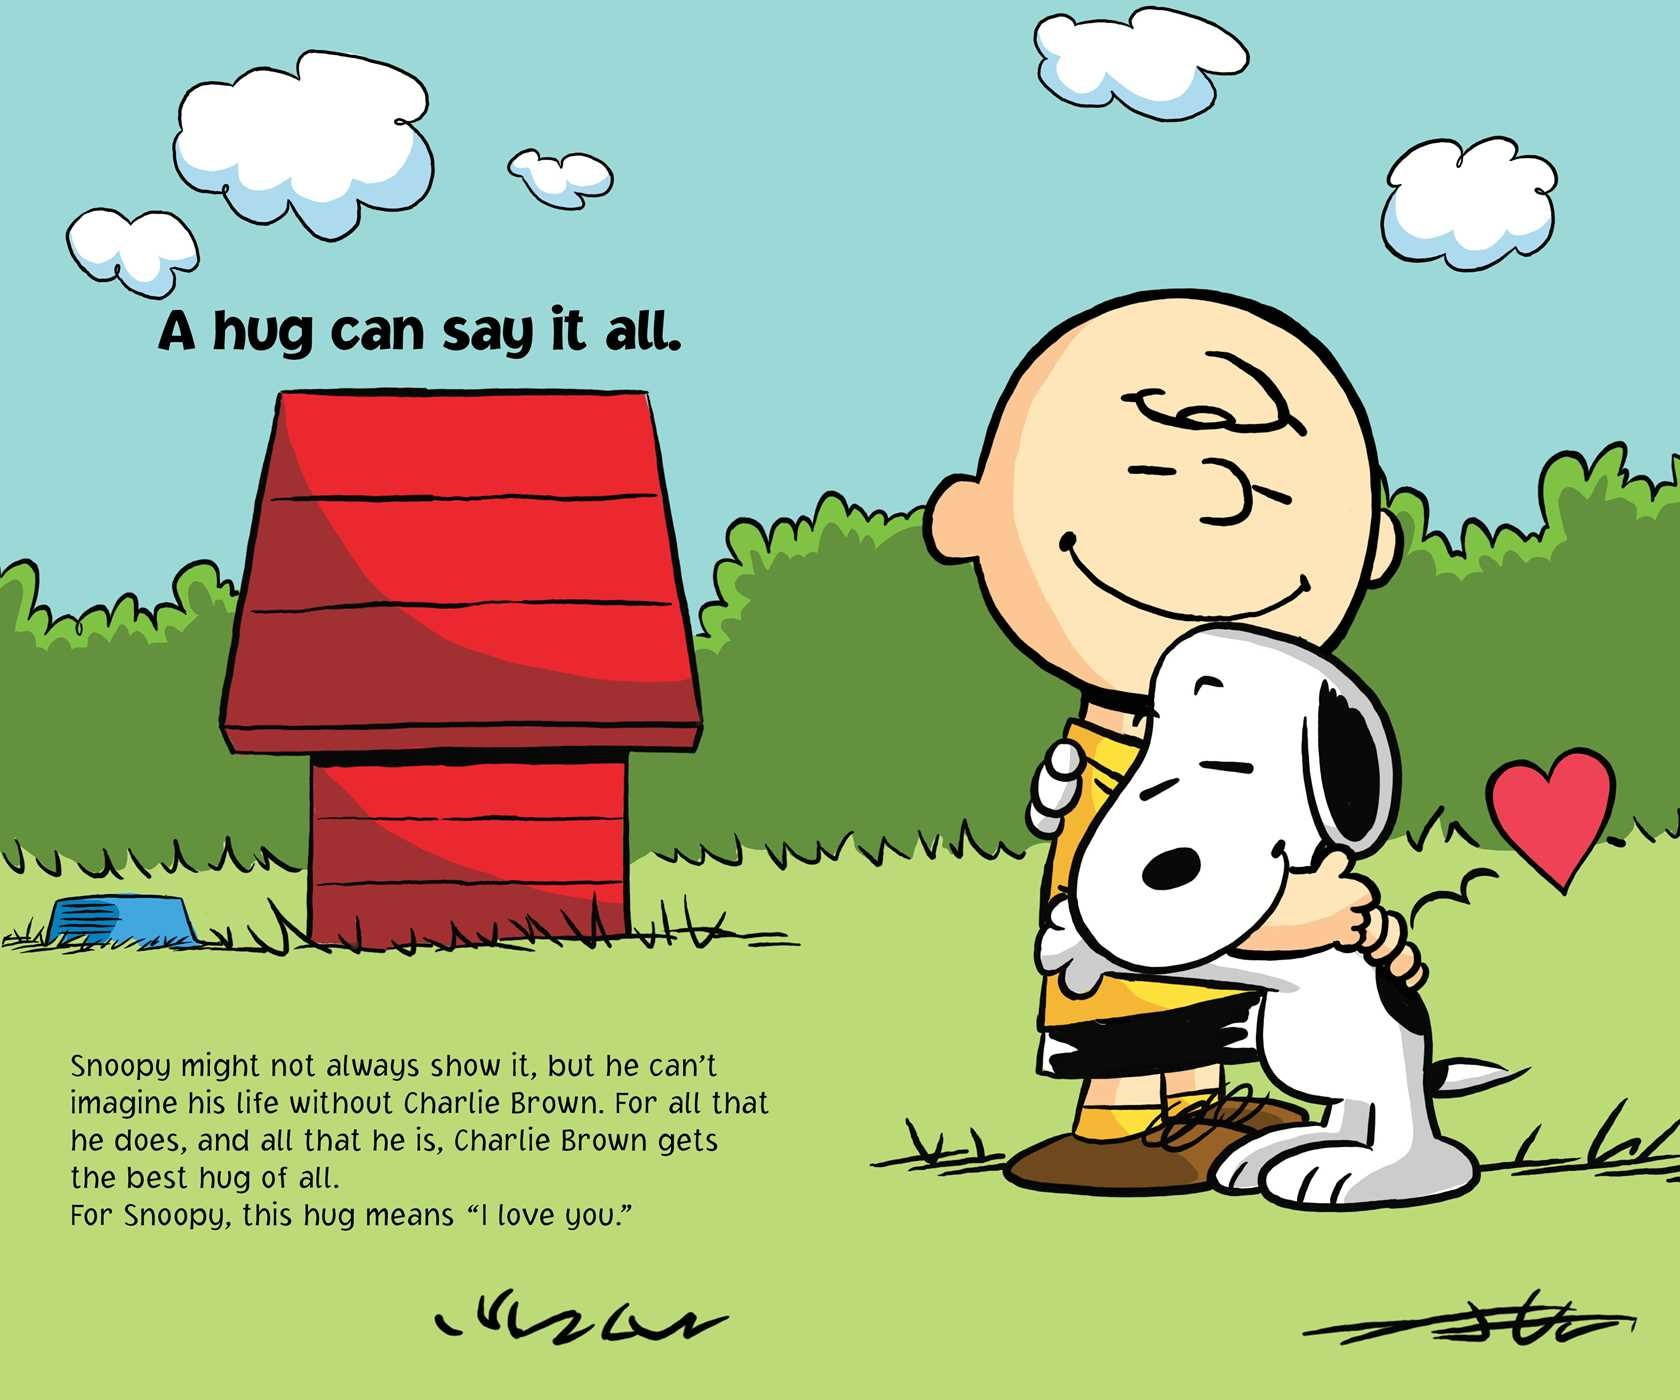 hugs for snoopy book by charles m schulz r j cregg scott